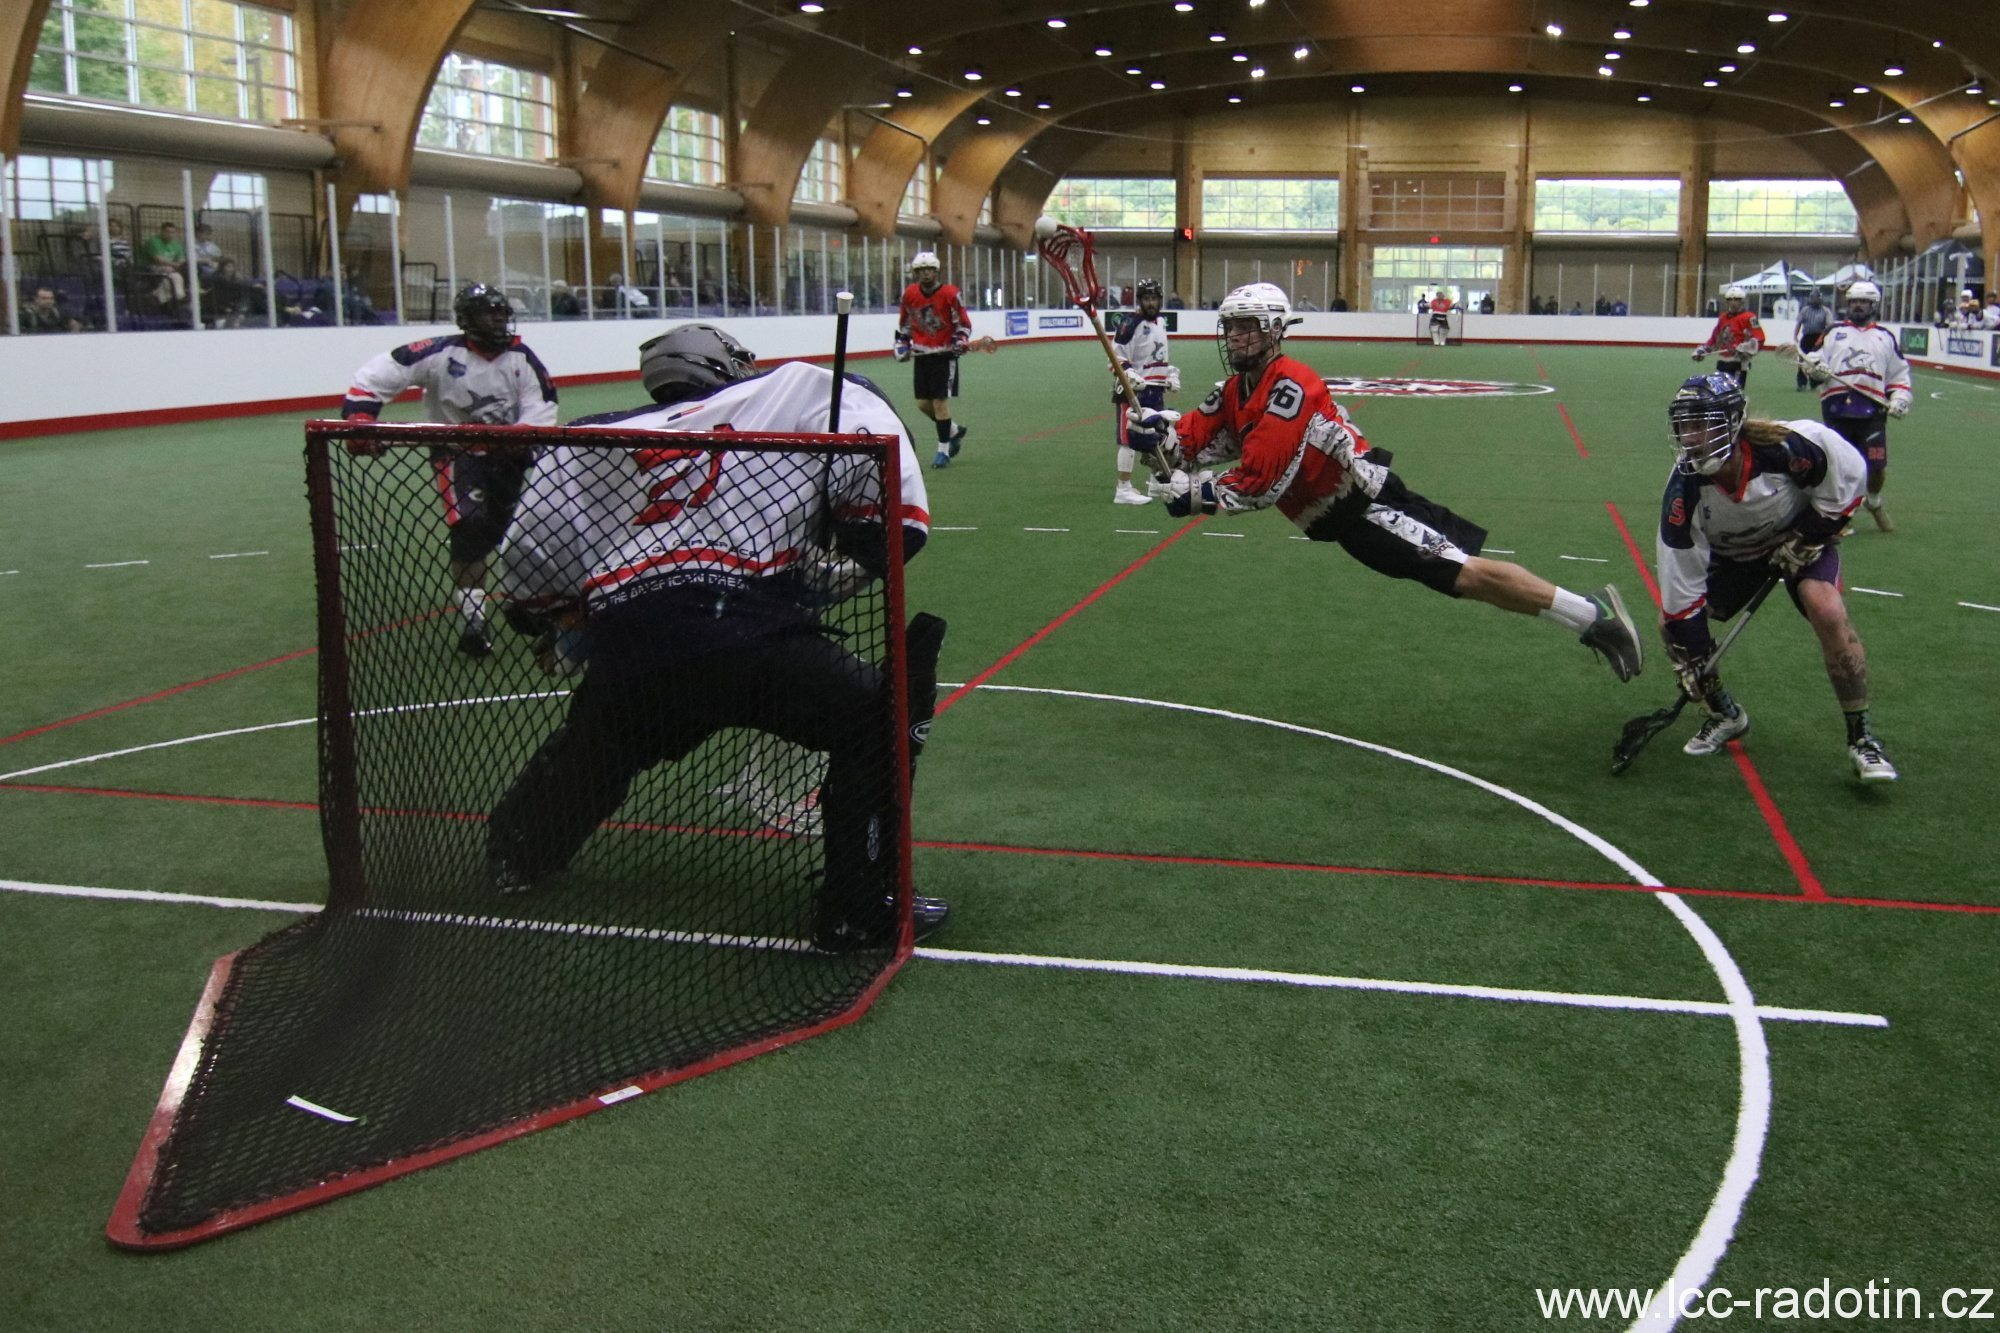 LASNAI 2016, Day 3 - Box Lacrosse Tournaments